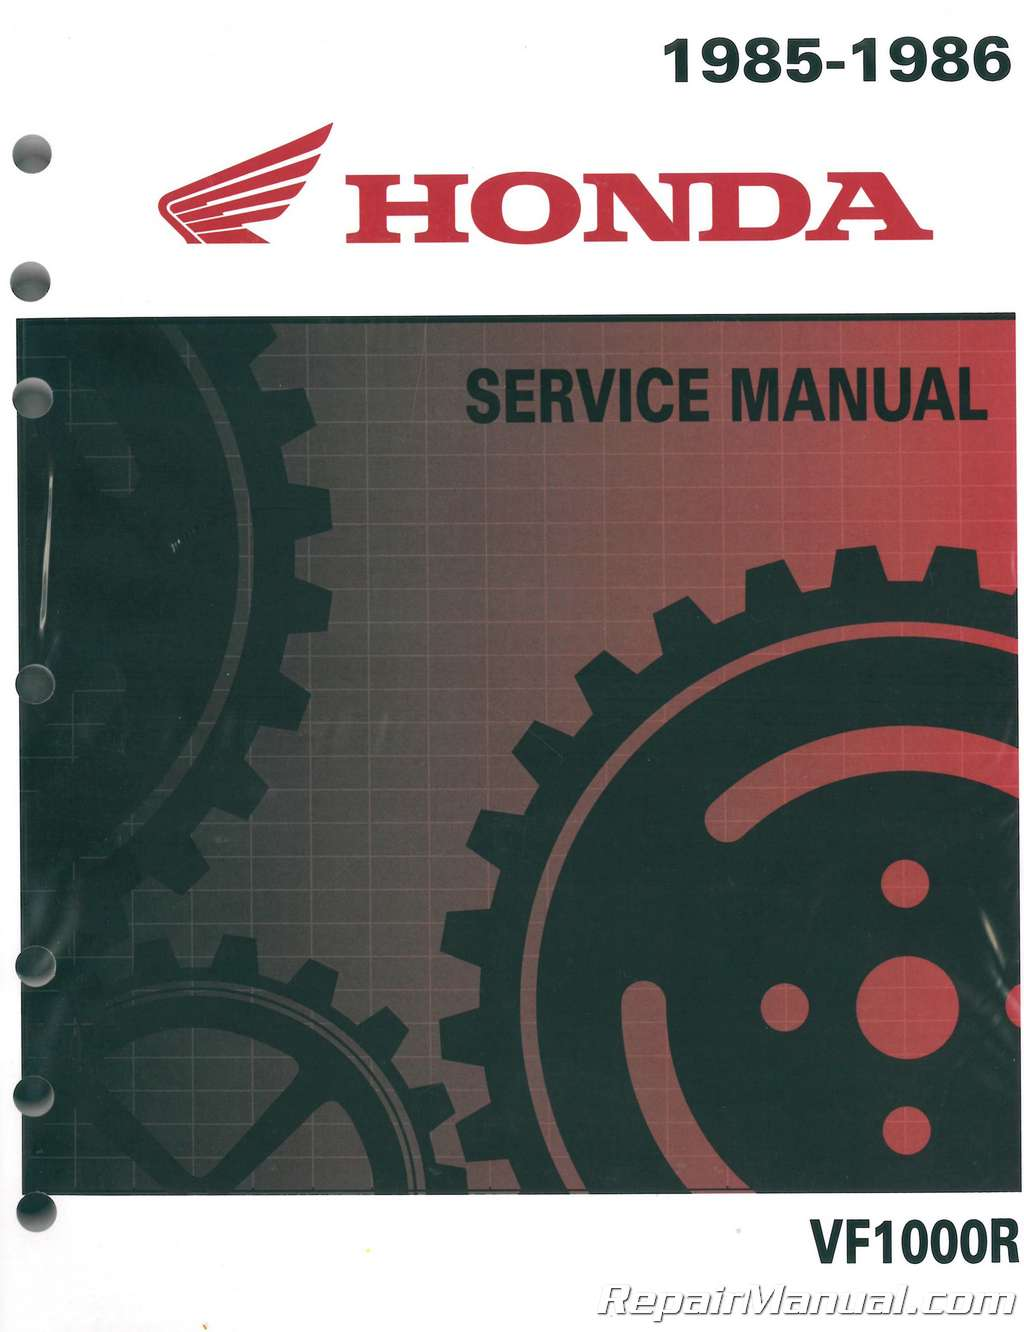 1985 honda vf1000 service manual